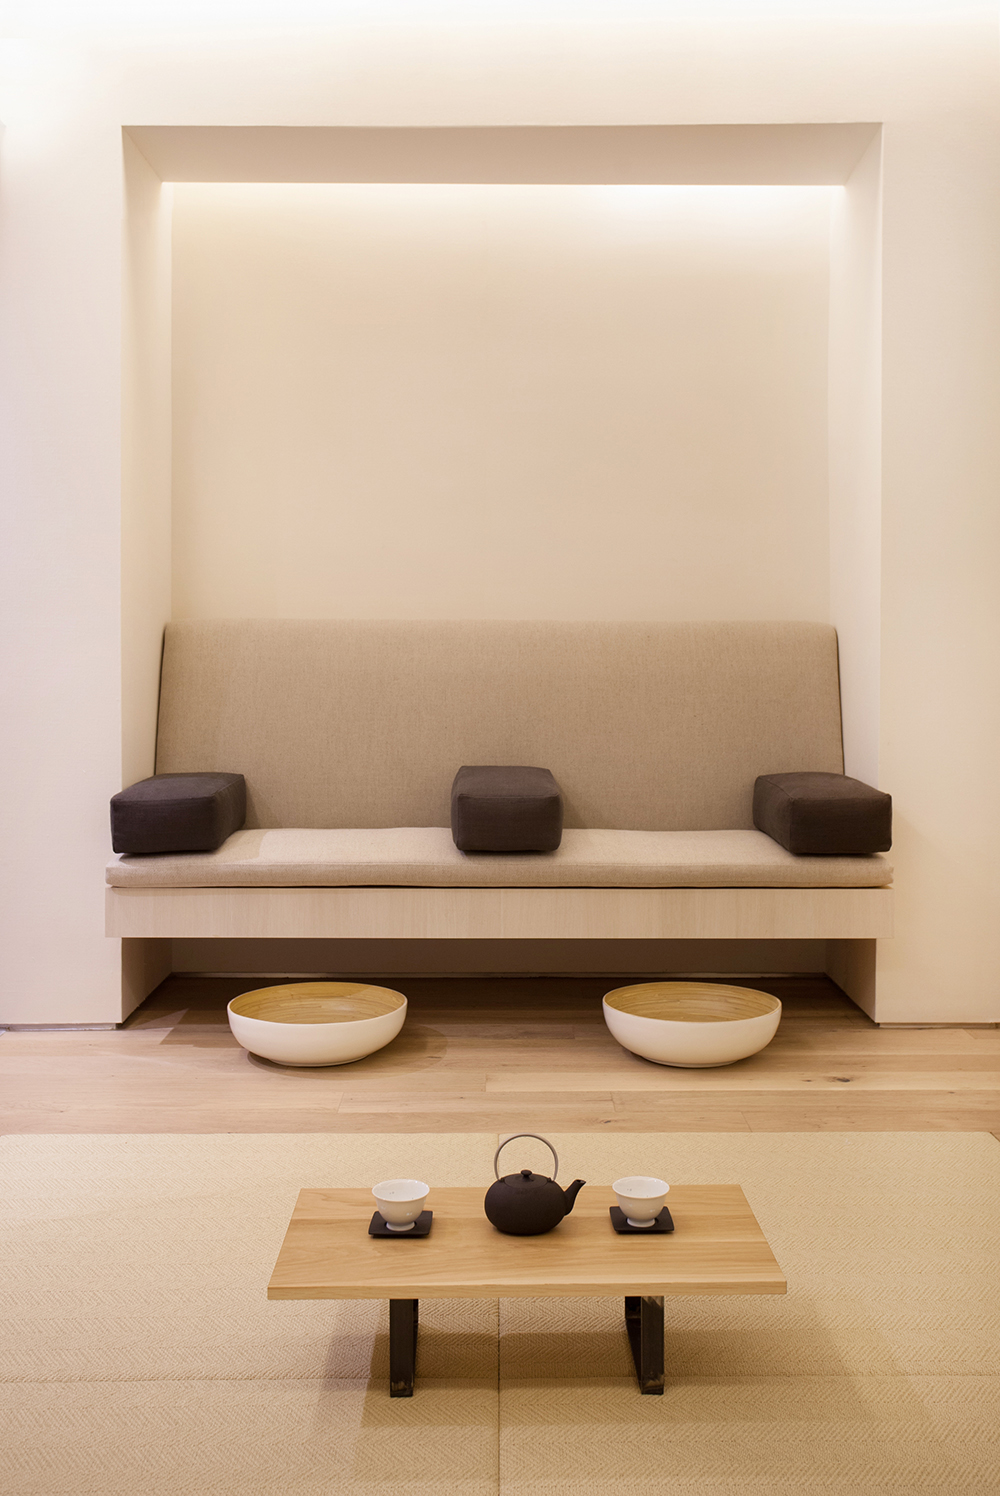 Couples' treatments include a Detox Foot Soak.